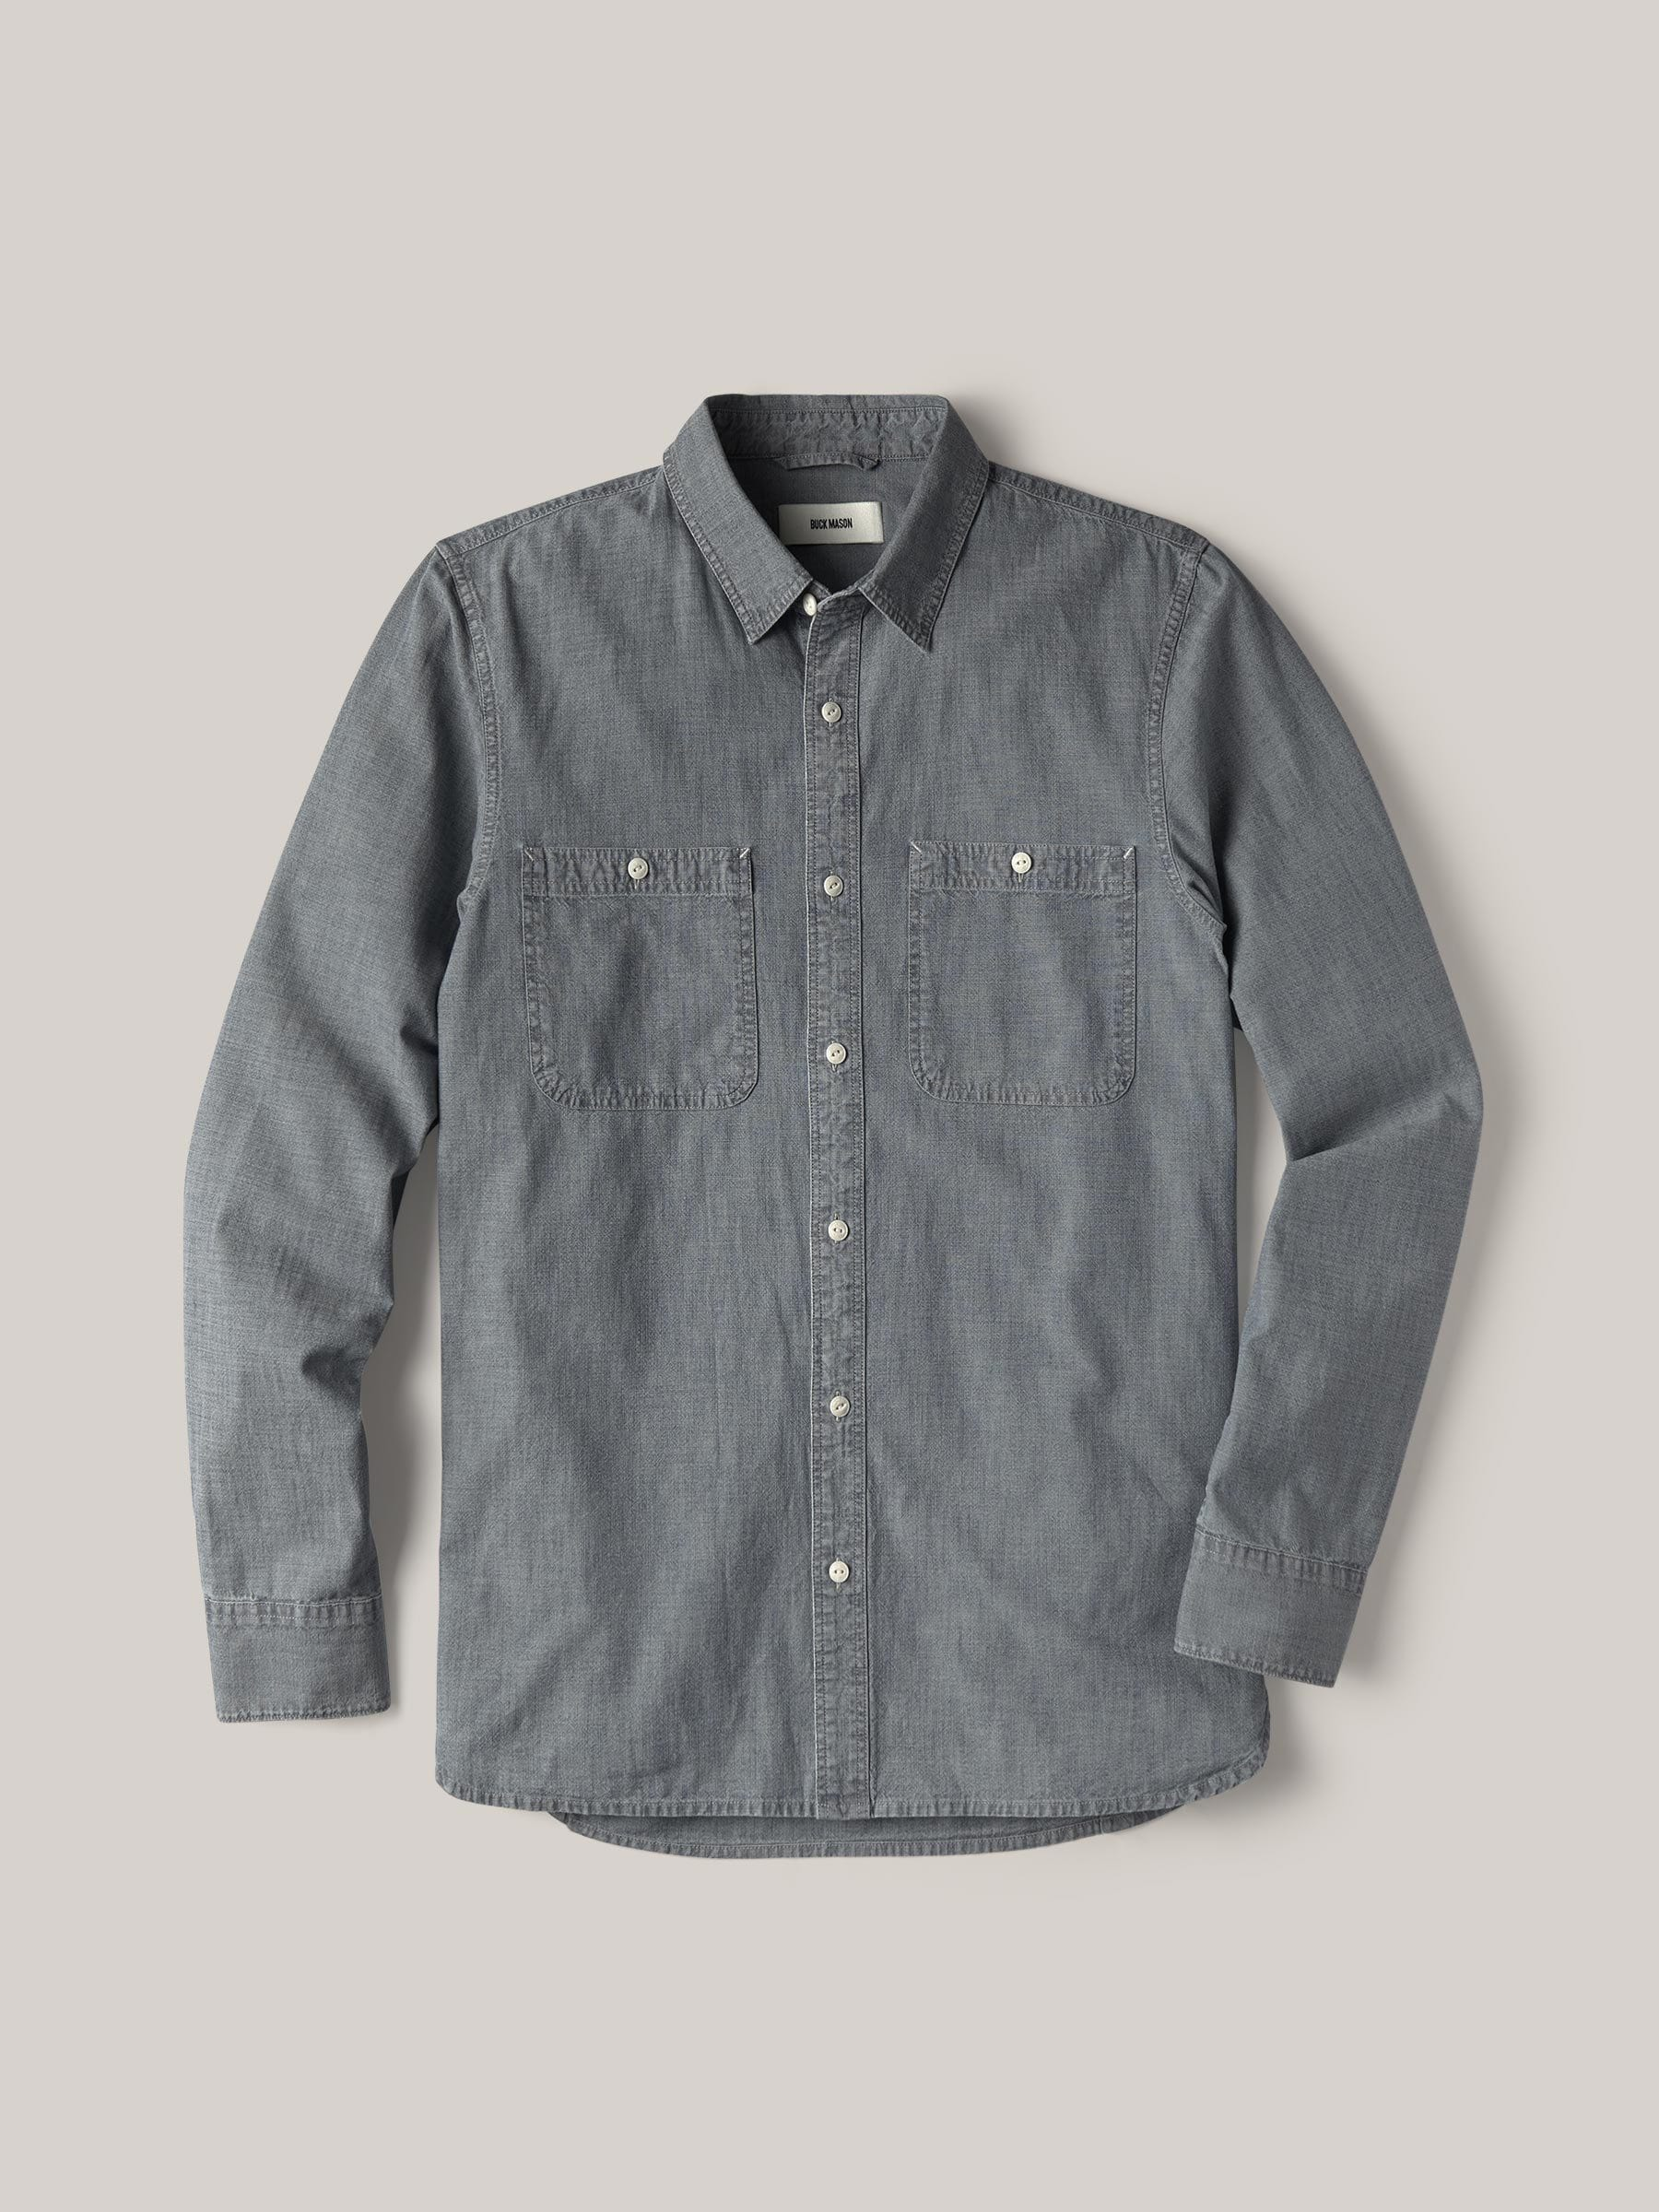 Buck Mason - M008 Medium Wash Chambray Work Shirt